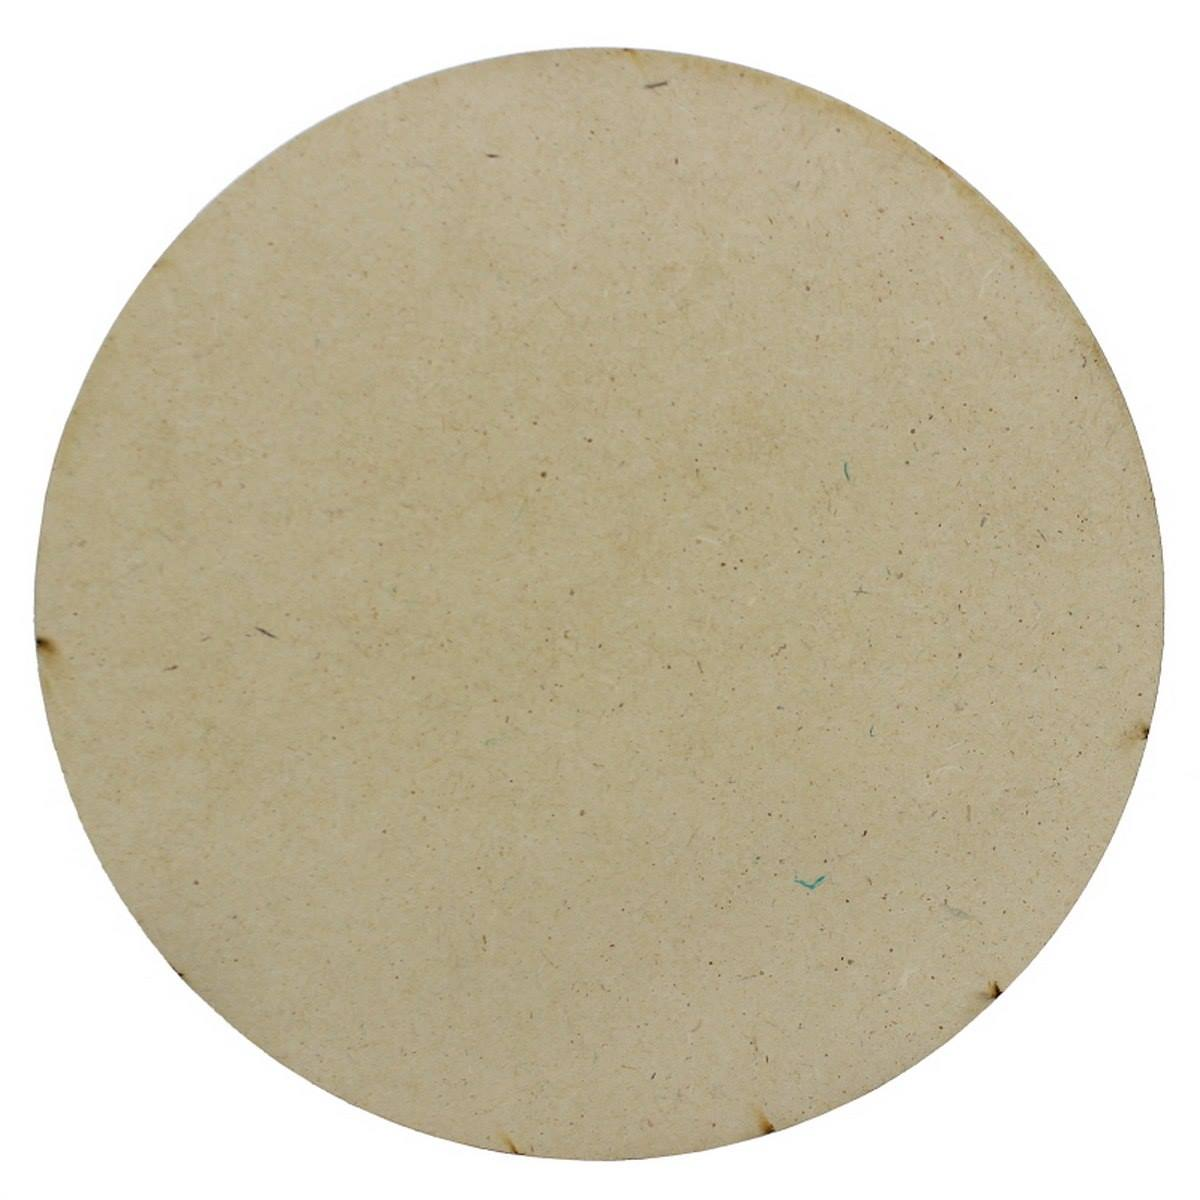 MDF Wooden Plate Round Shape (Pack of 4) (5x5 Inch) (4MM Thick)